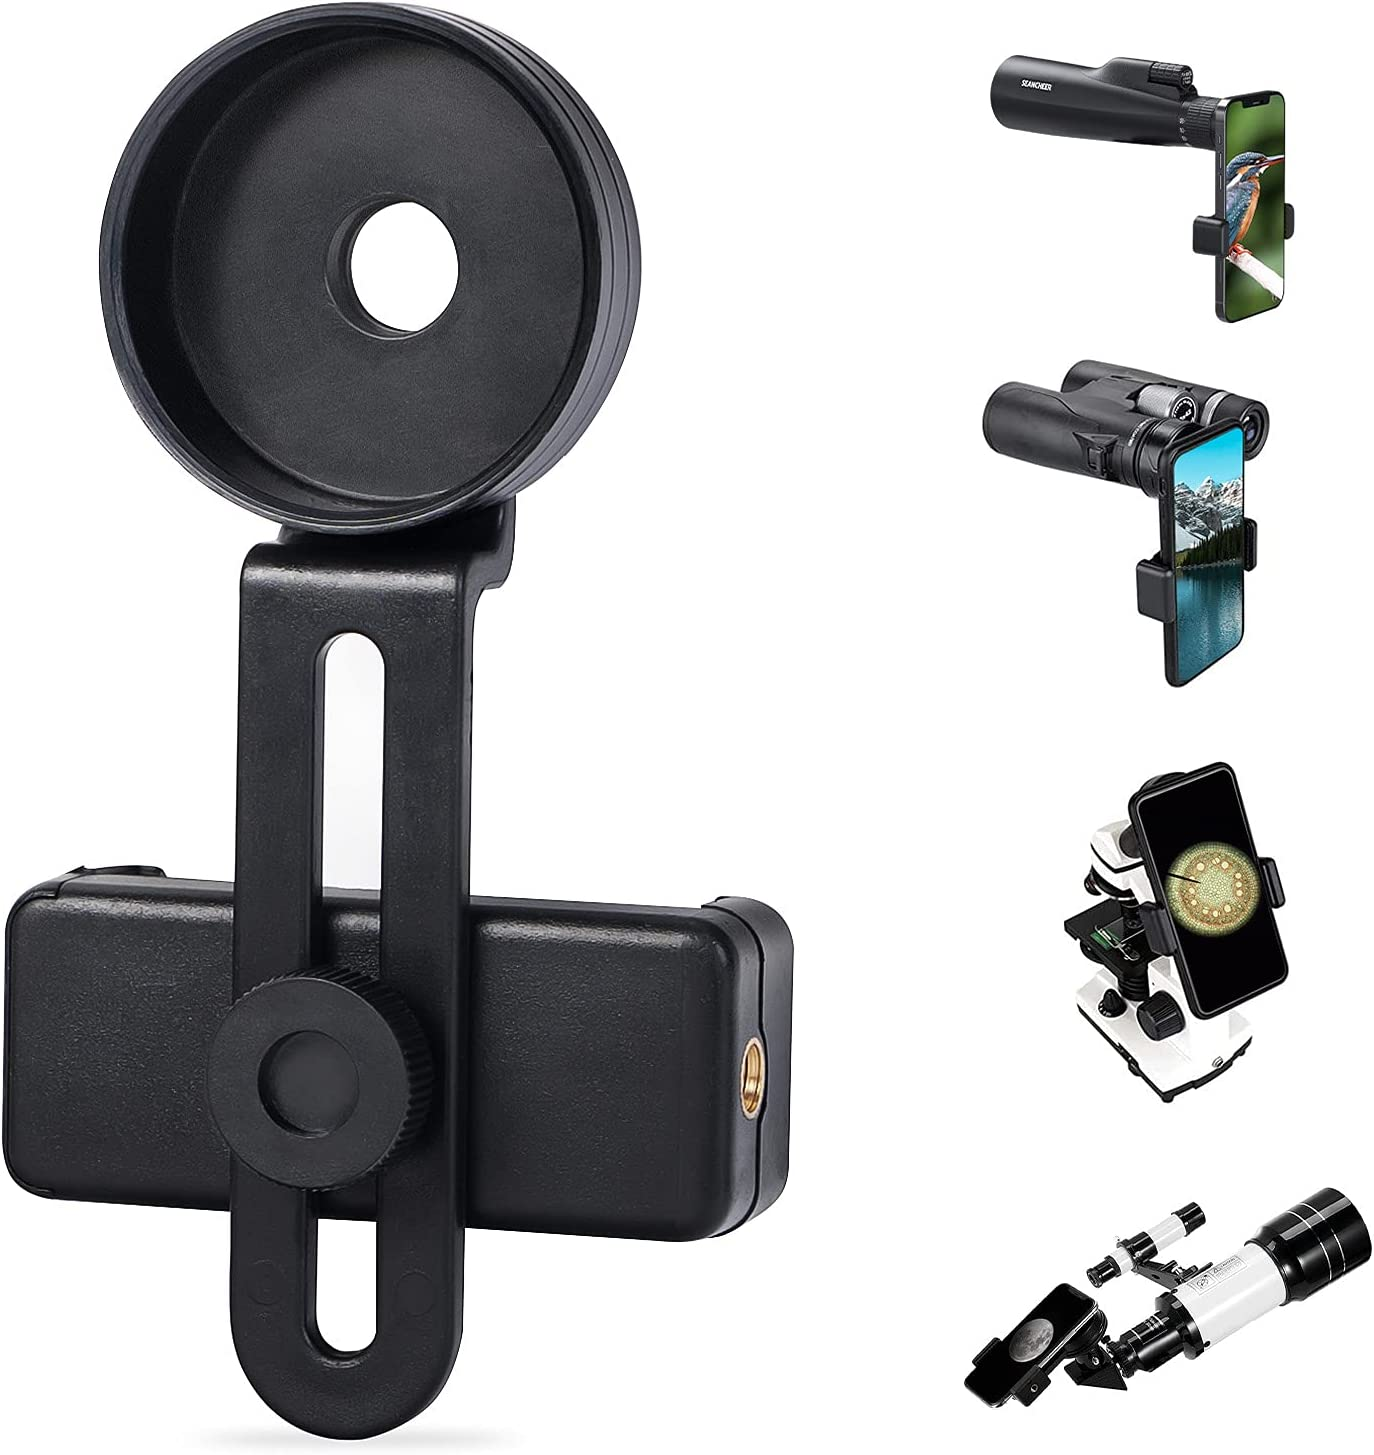 SEANCHEER Universal Cell Phone Adapter Mount Max 87% OFF Telescope Ho Max 88% OFF